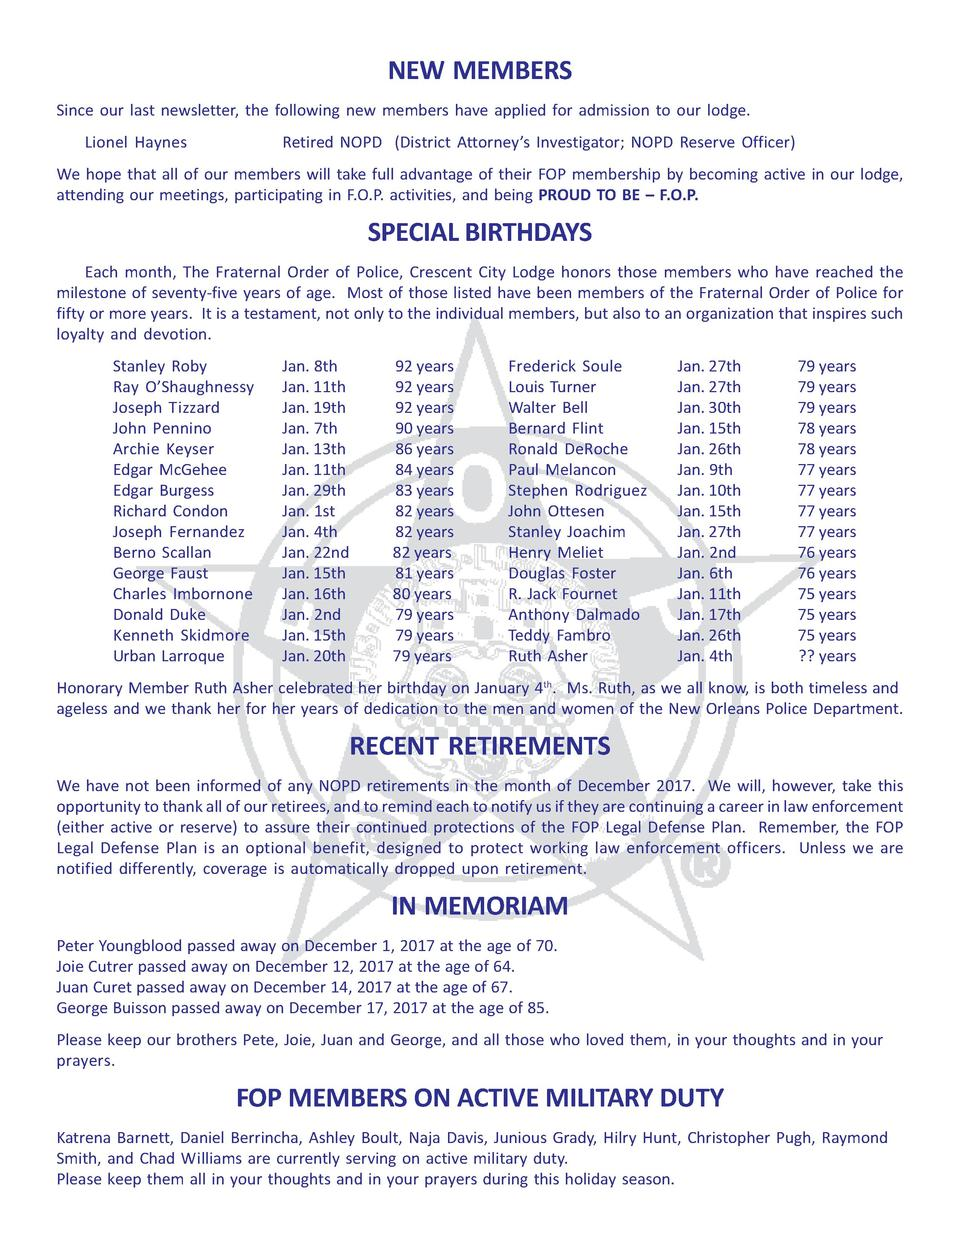 NEW MEMBERS Since our last newsletter, the following new members have applied for admission to our lodge. Lionel Haynes  R...